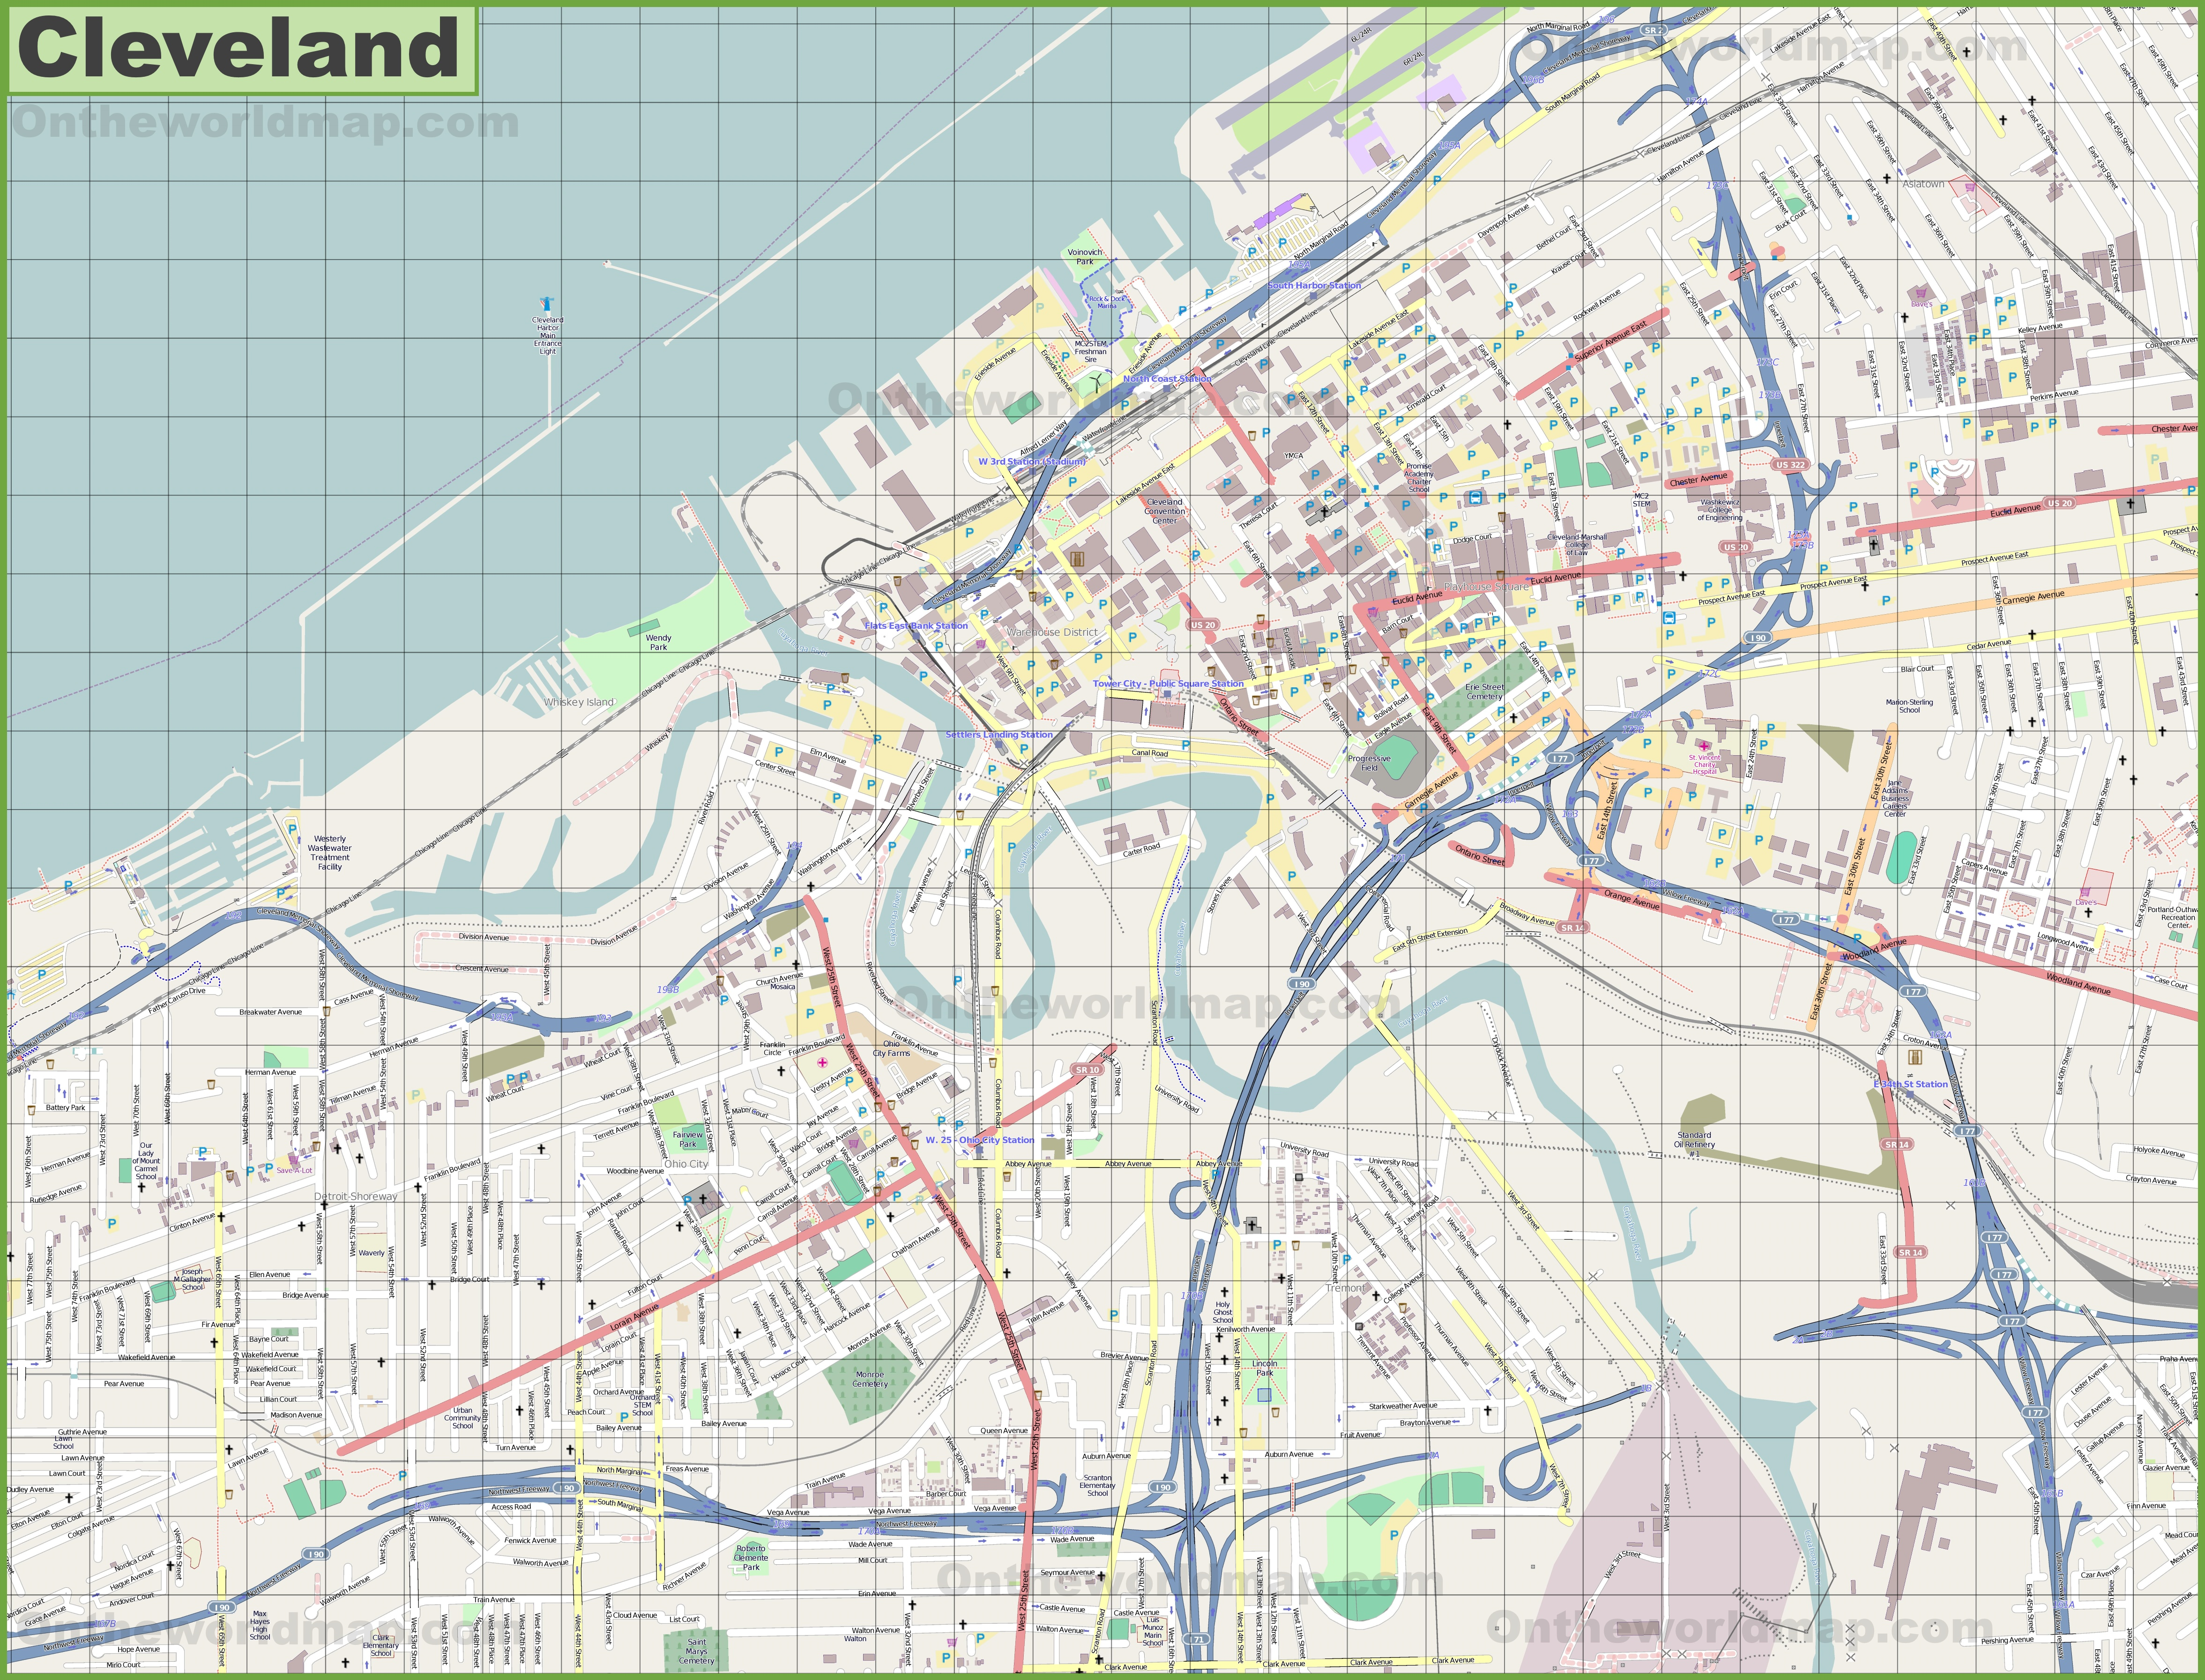 Cleveland Maps Ohio US Maps Of Cleveland - Cleveland us map